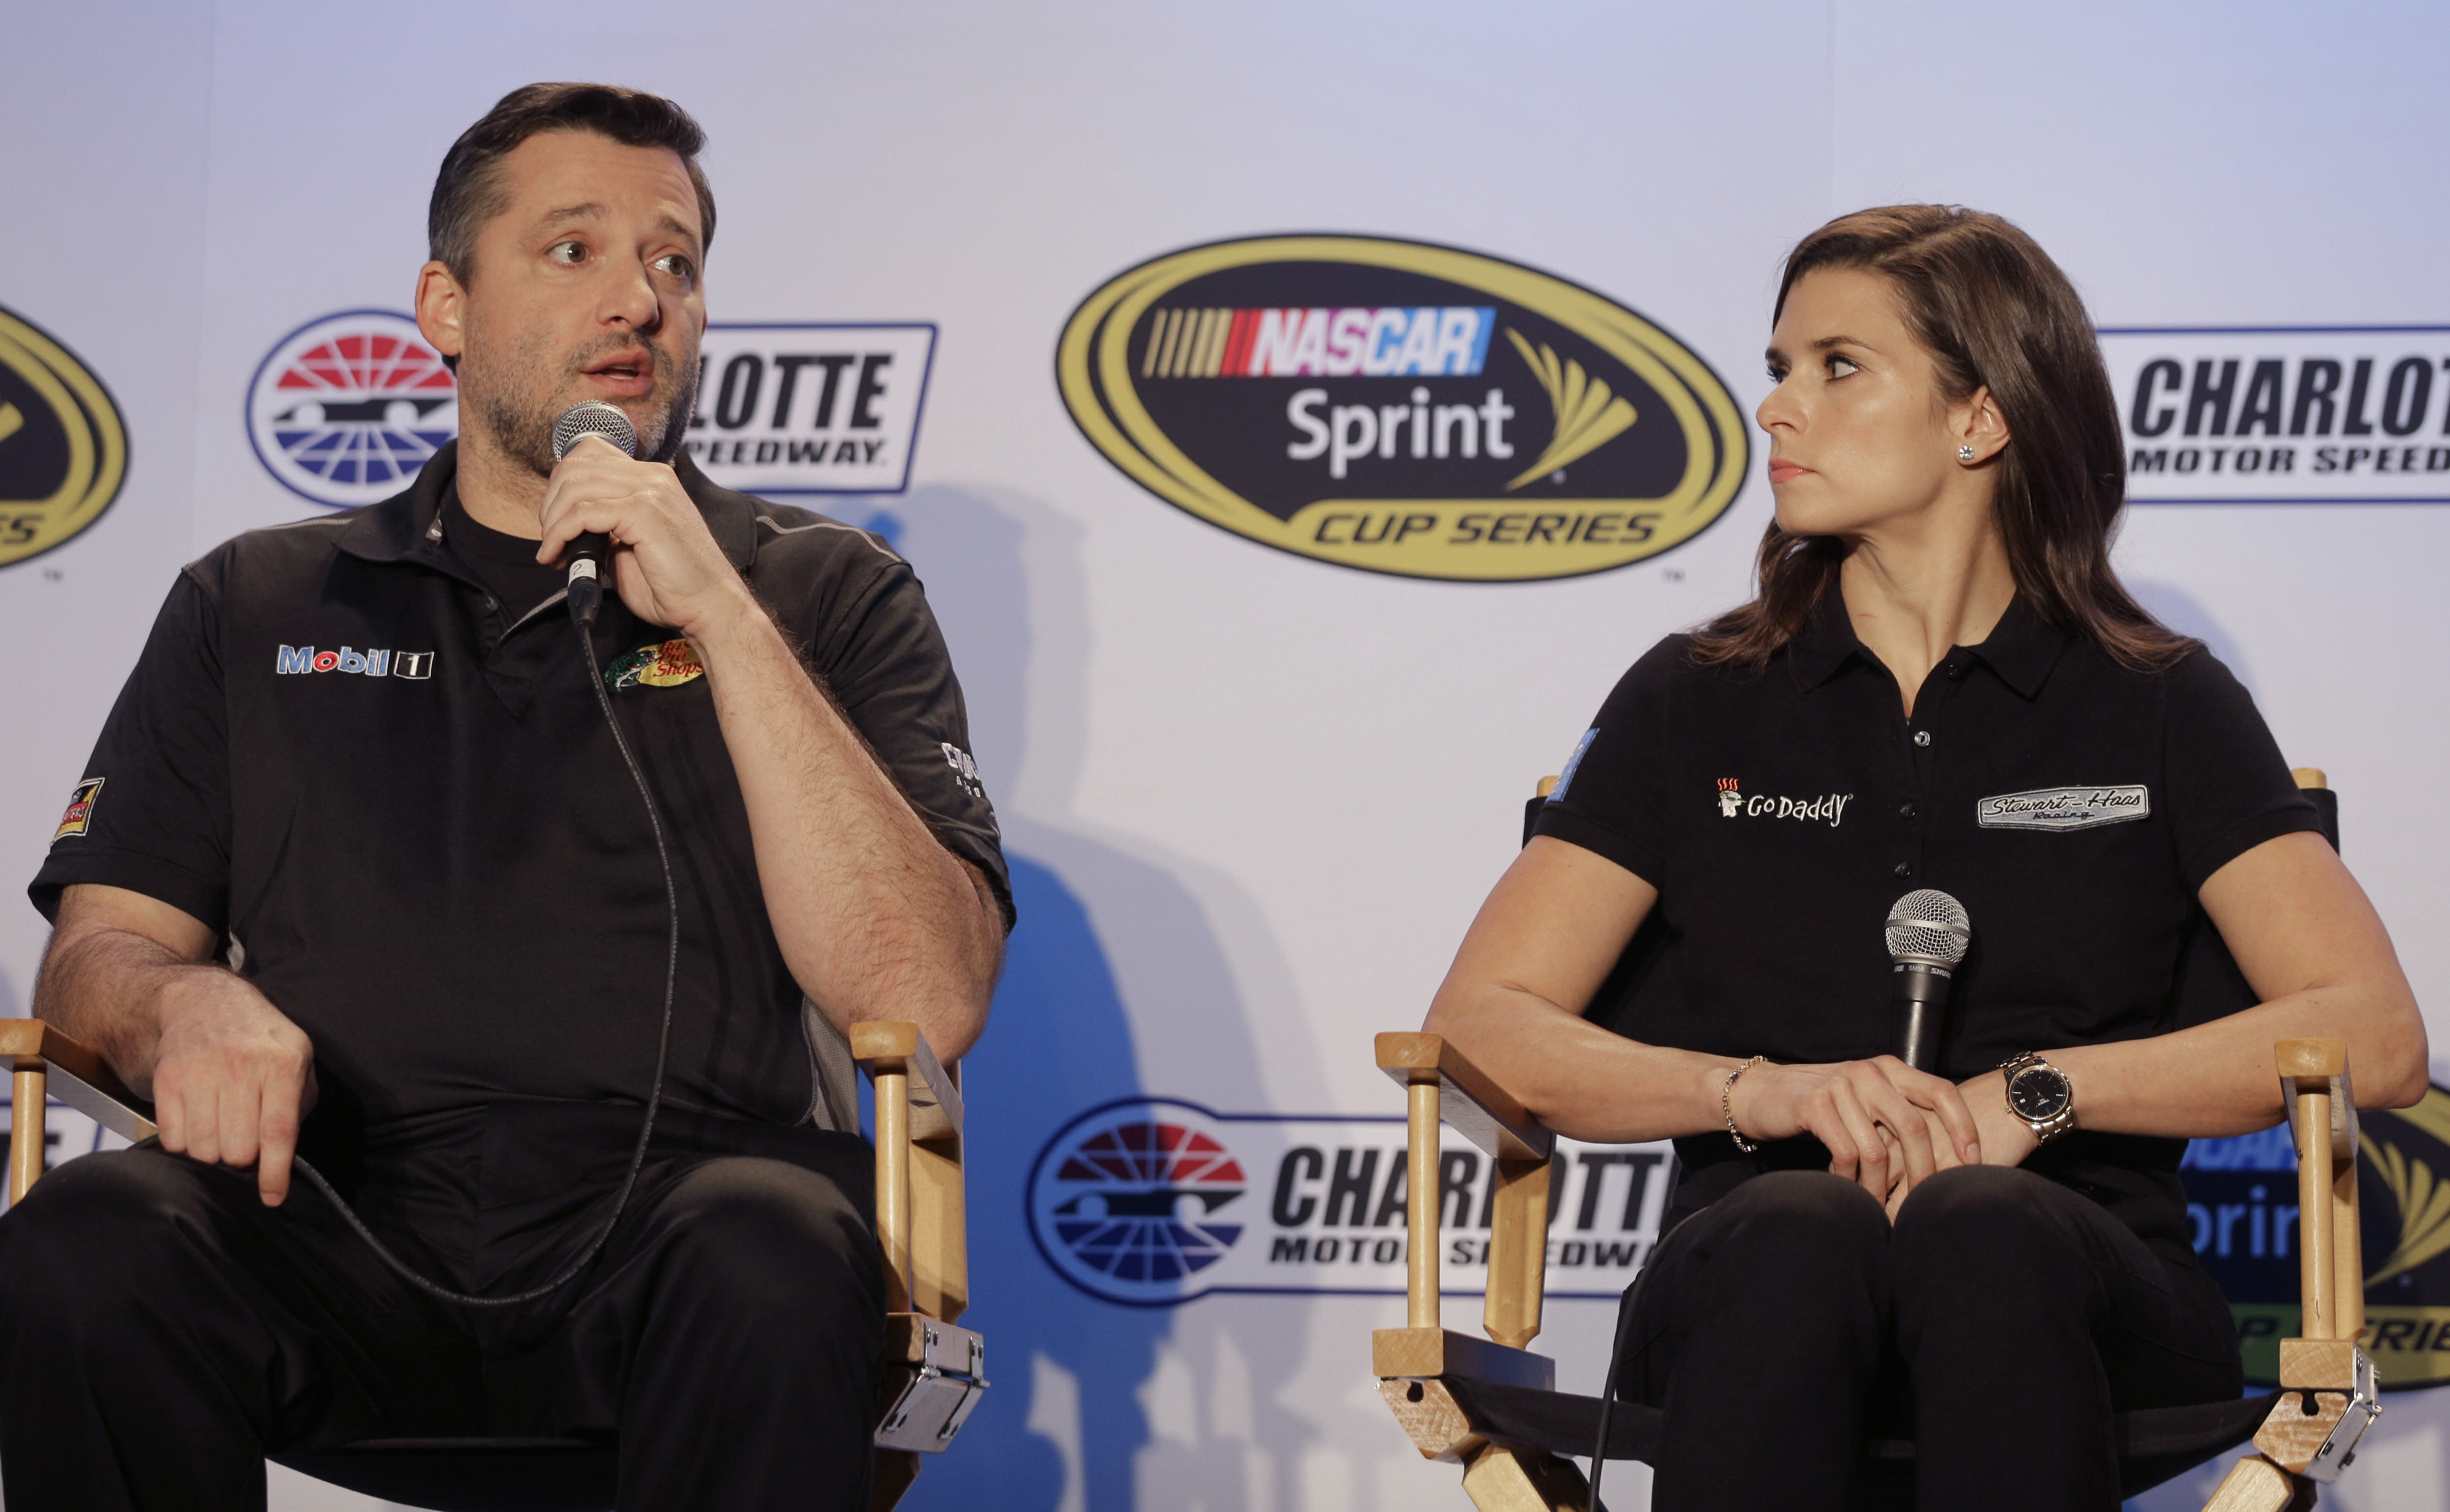 Tony Stewart returns with a swagger not seen in 2 years